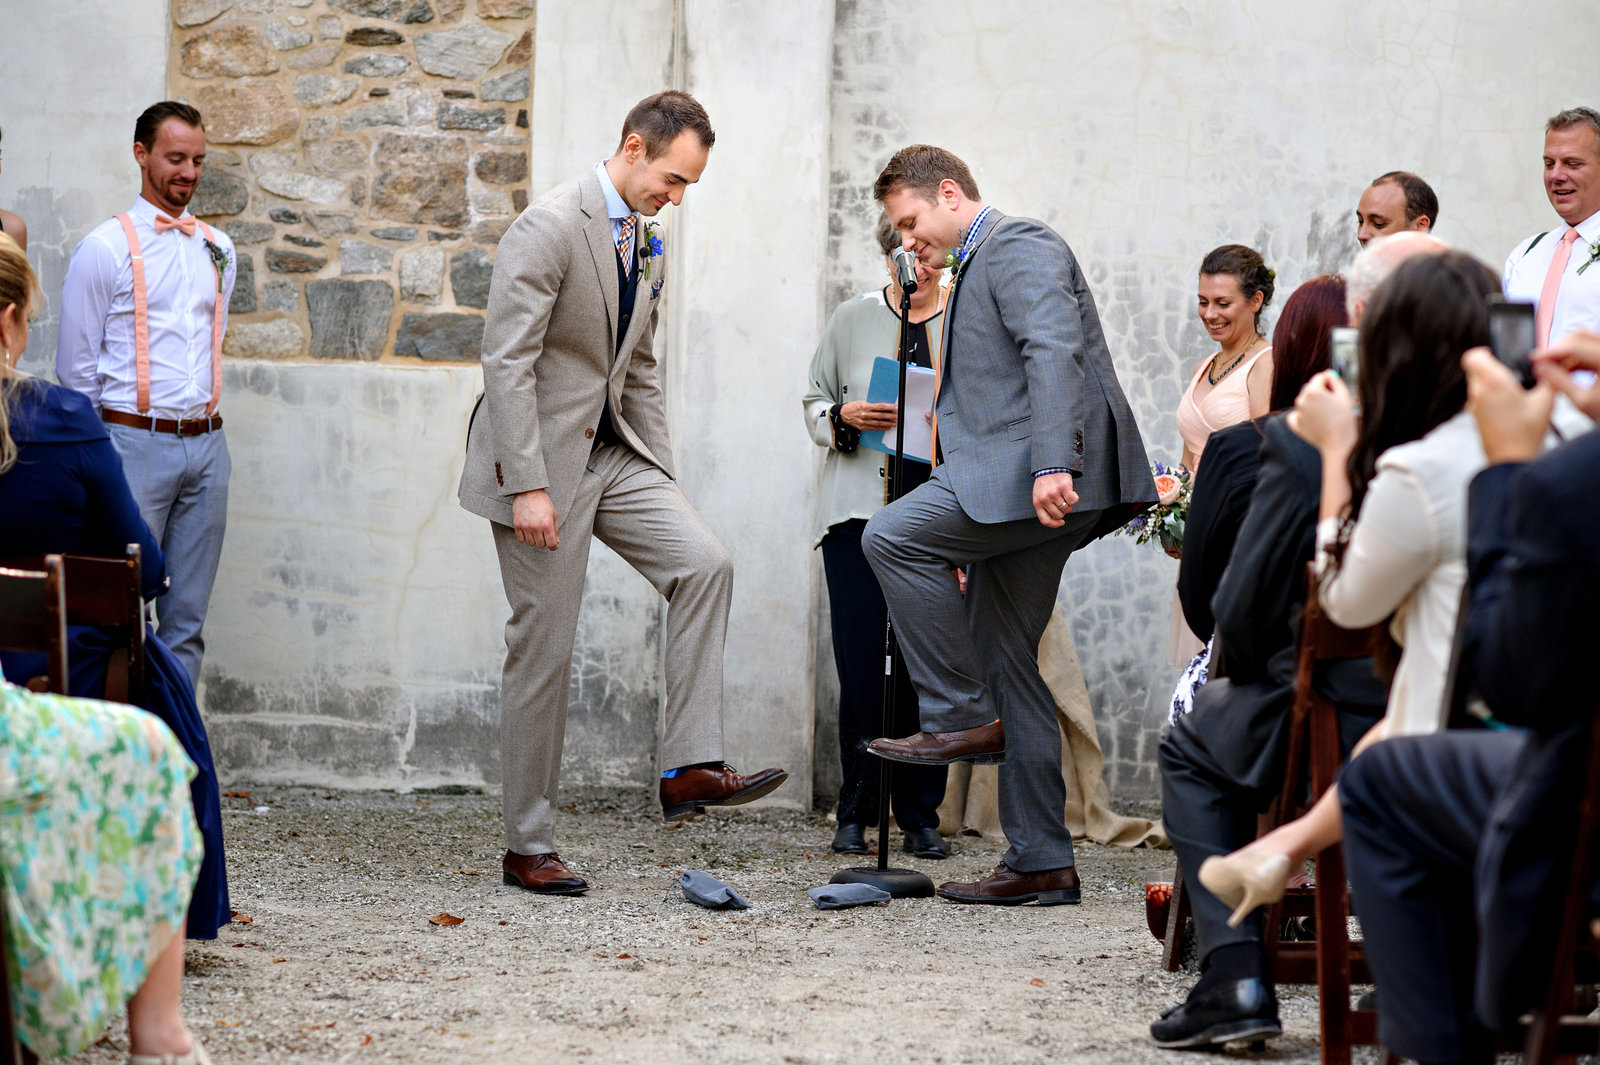 A same sex wedding couple during their jewish ceremony tradition of smashing of the glass.